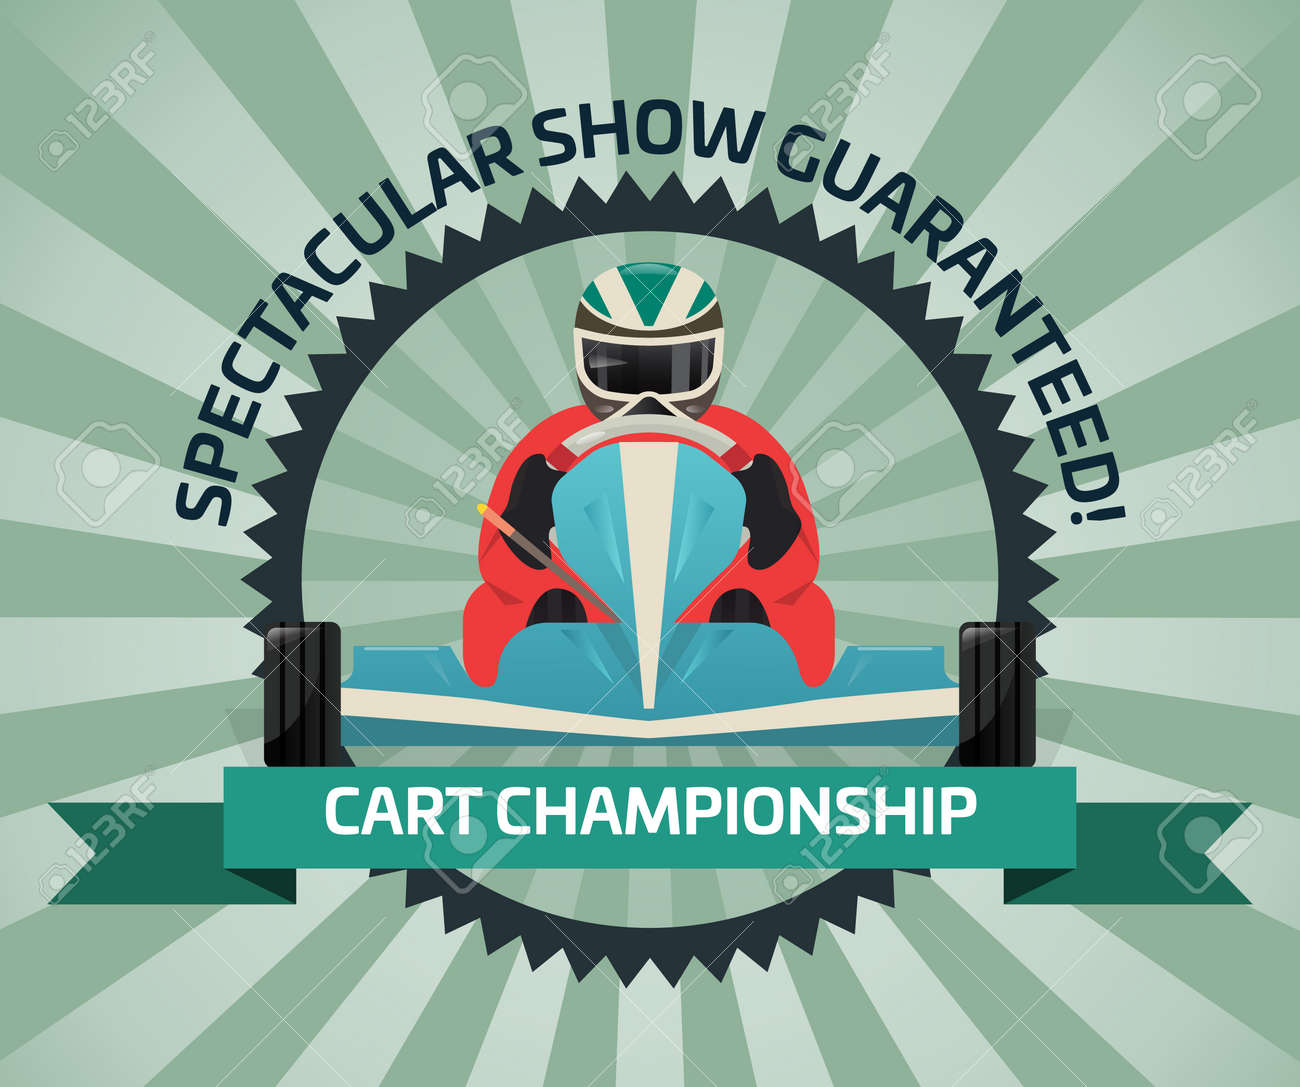 Cart championship banner in flat design vector illustration. Auto pilots competition, speed racing, extreme karting sport, automobile motor show, road trophy race. Driver racing on go kart logo. - 75943131